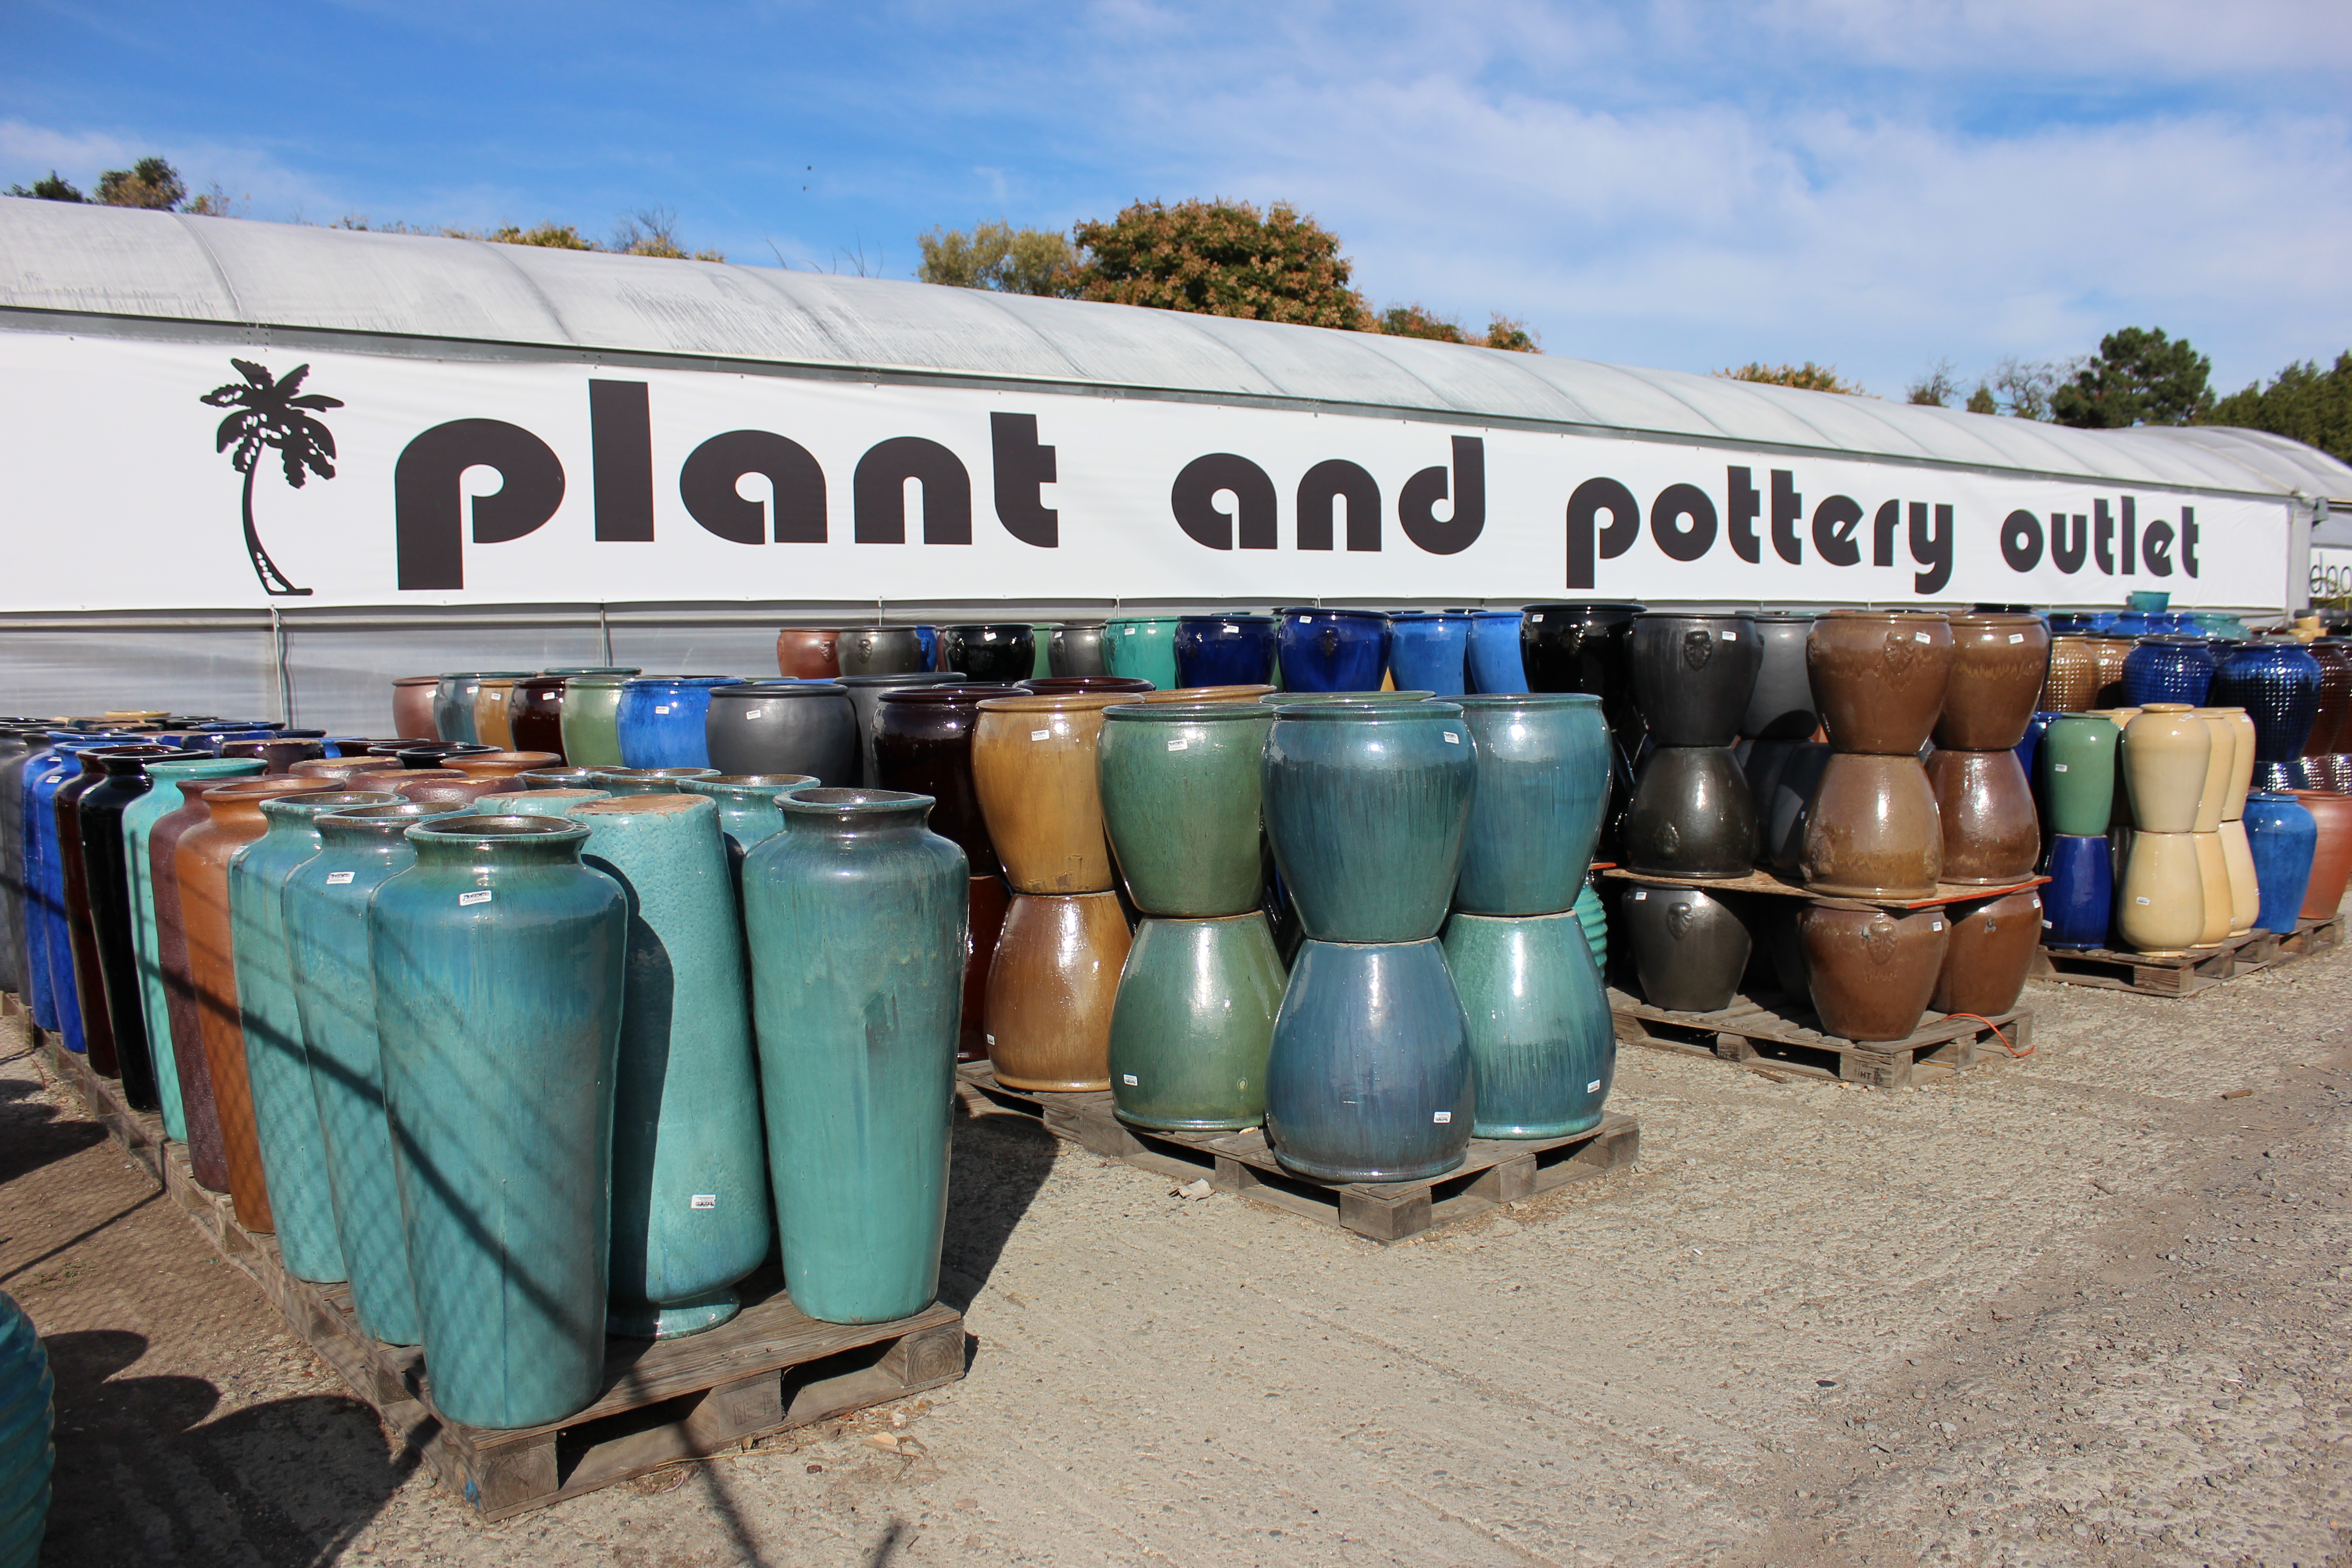 Outdoor Planters Near Me Plant And Pottery Outlet Sunol California Usa